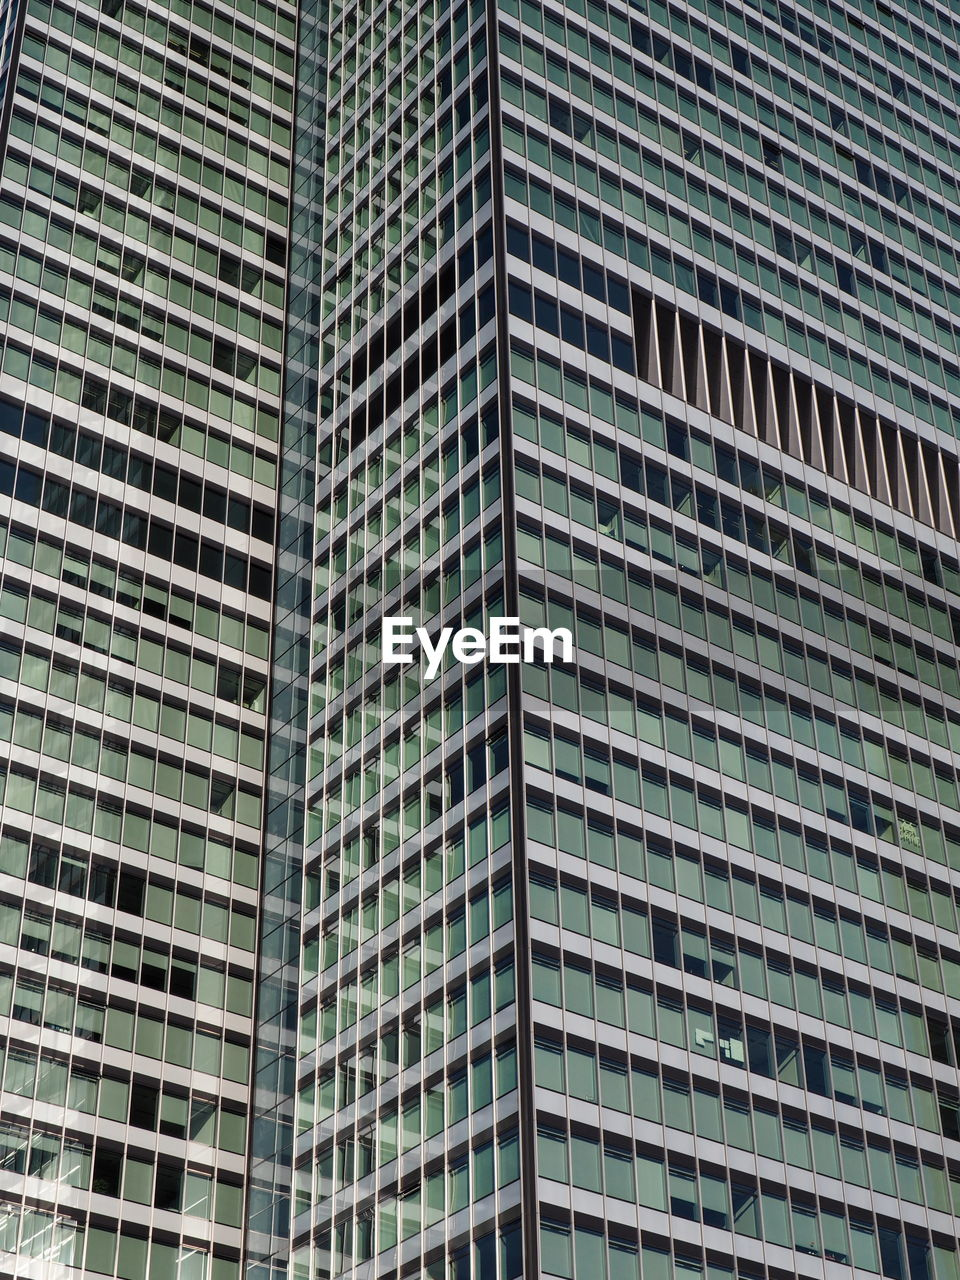 architecture, modern, skyscraper, full frame, low angle view, building exterior, built structure, window, day, corporate business, backgrounds, outdoors, no people, city